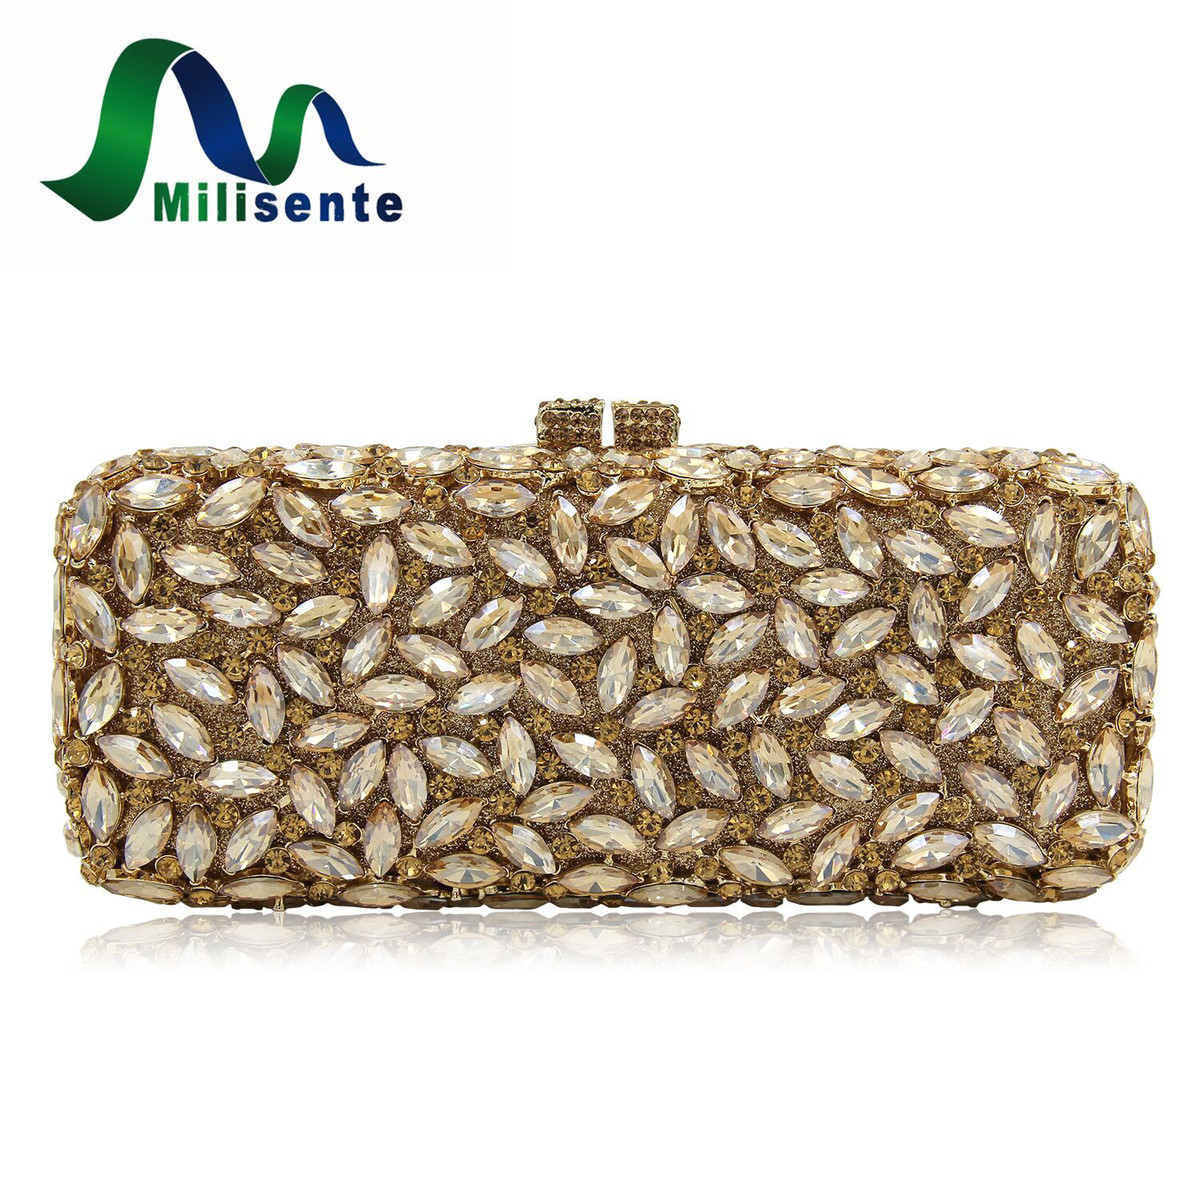 Milisente Brand Luxury Women Evening Bags Gold Fashion Diamond Crystal Party Clutch Bag Chain Wedding Clutches Purses milisente high quality luxury crystal evening bag women wedding purses lady party clutch handbag green blue gold white